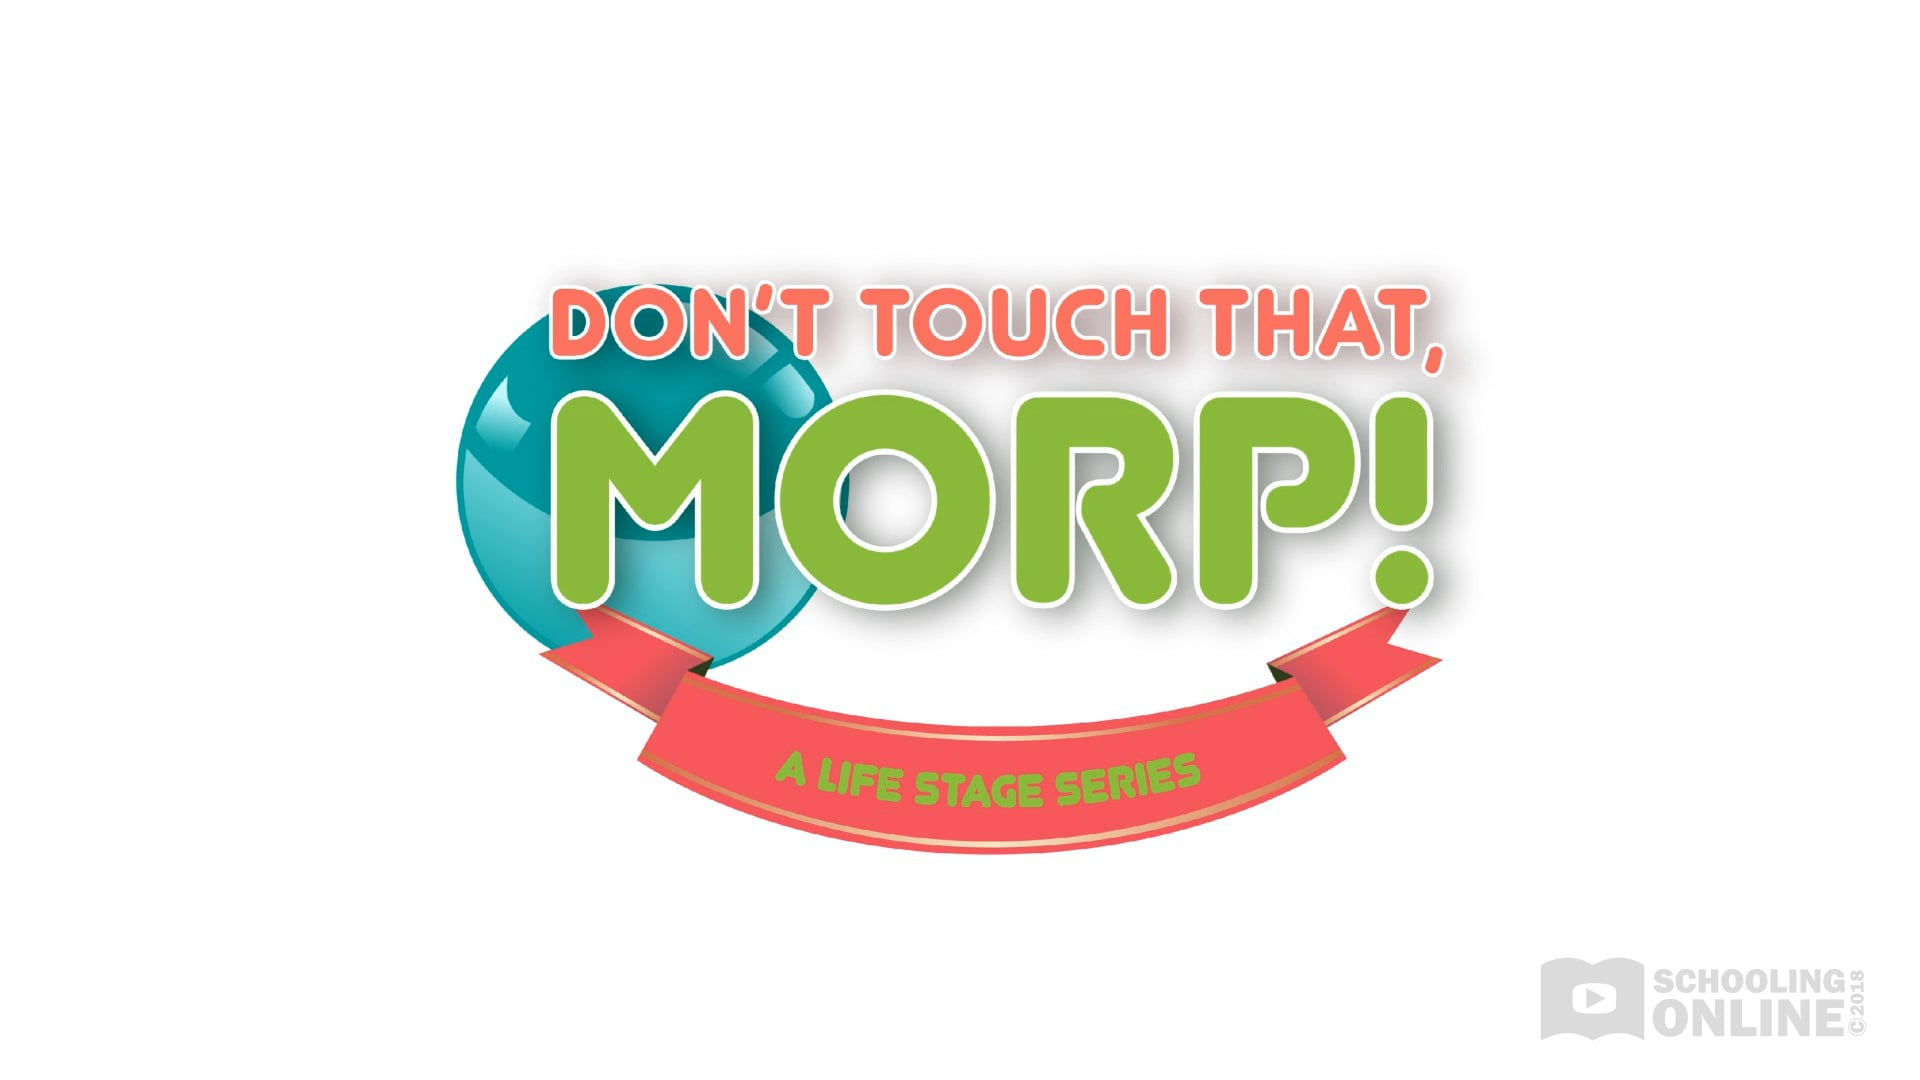 Don't Touch That, Morp! - The Life Stage Series